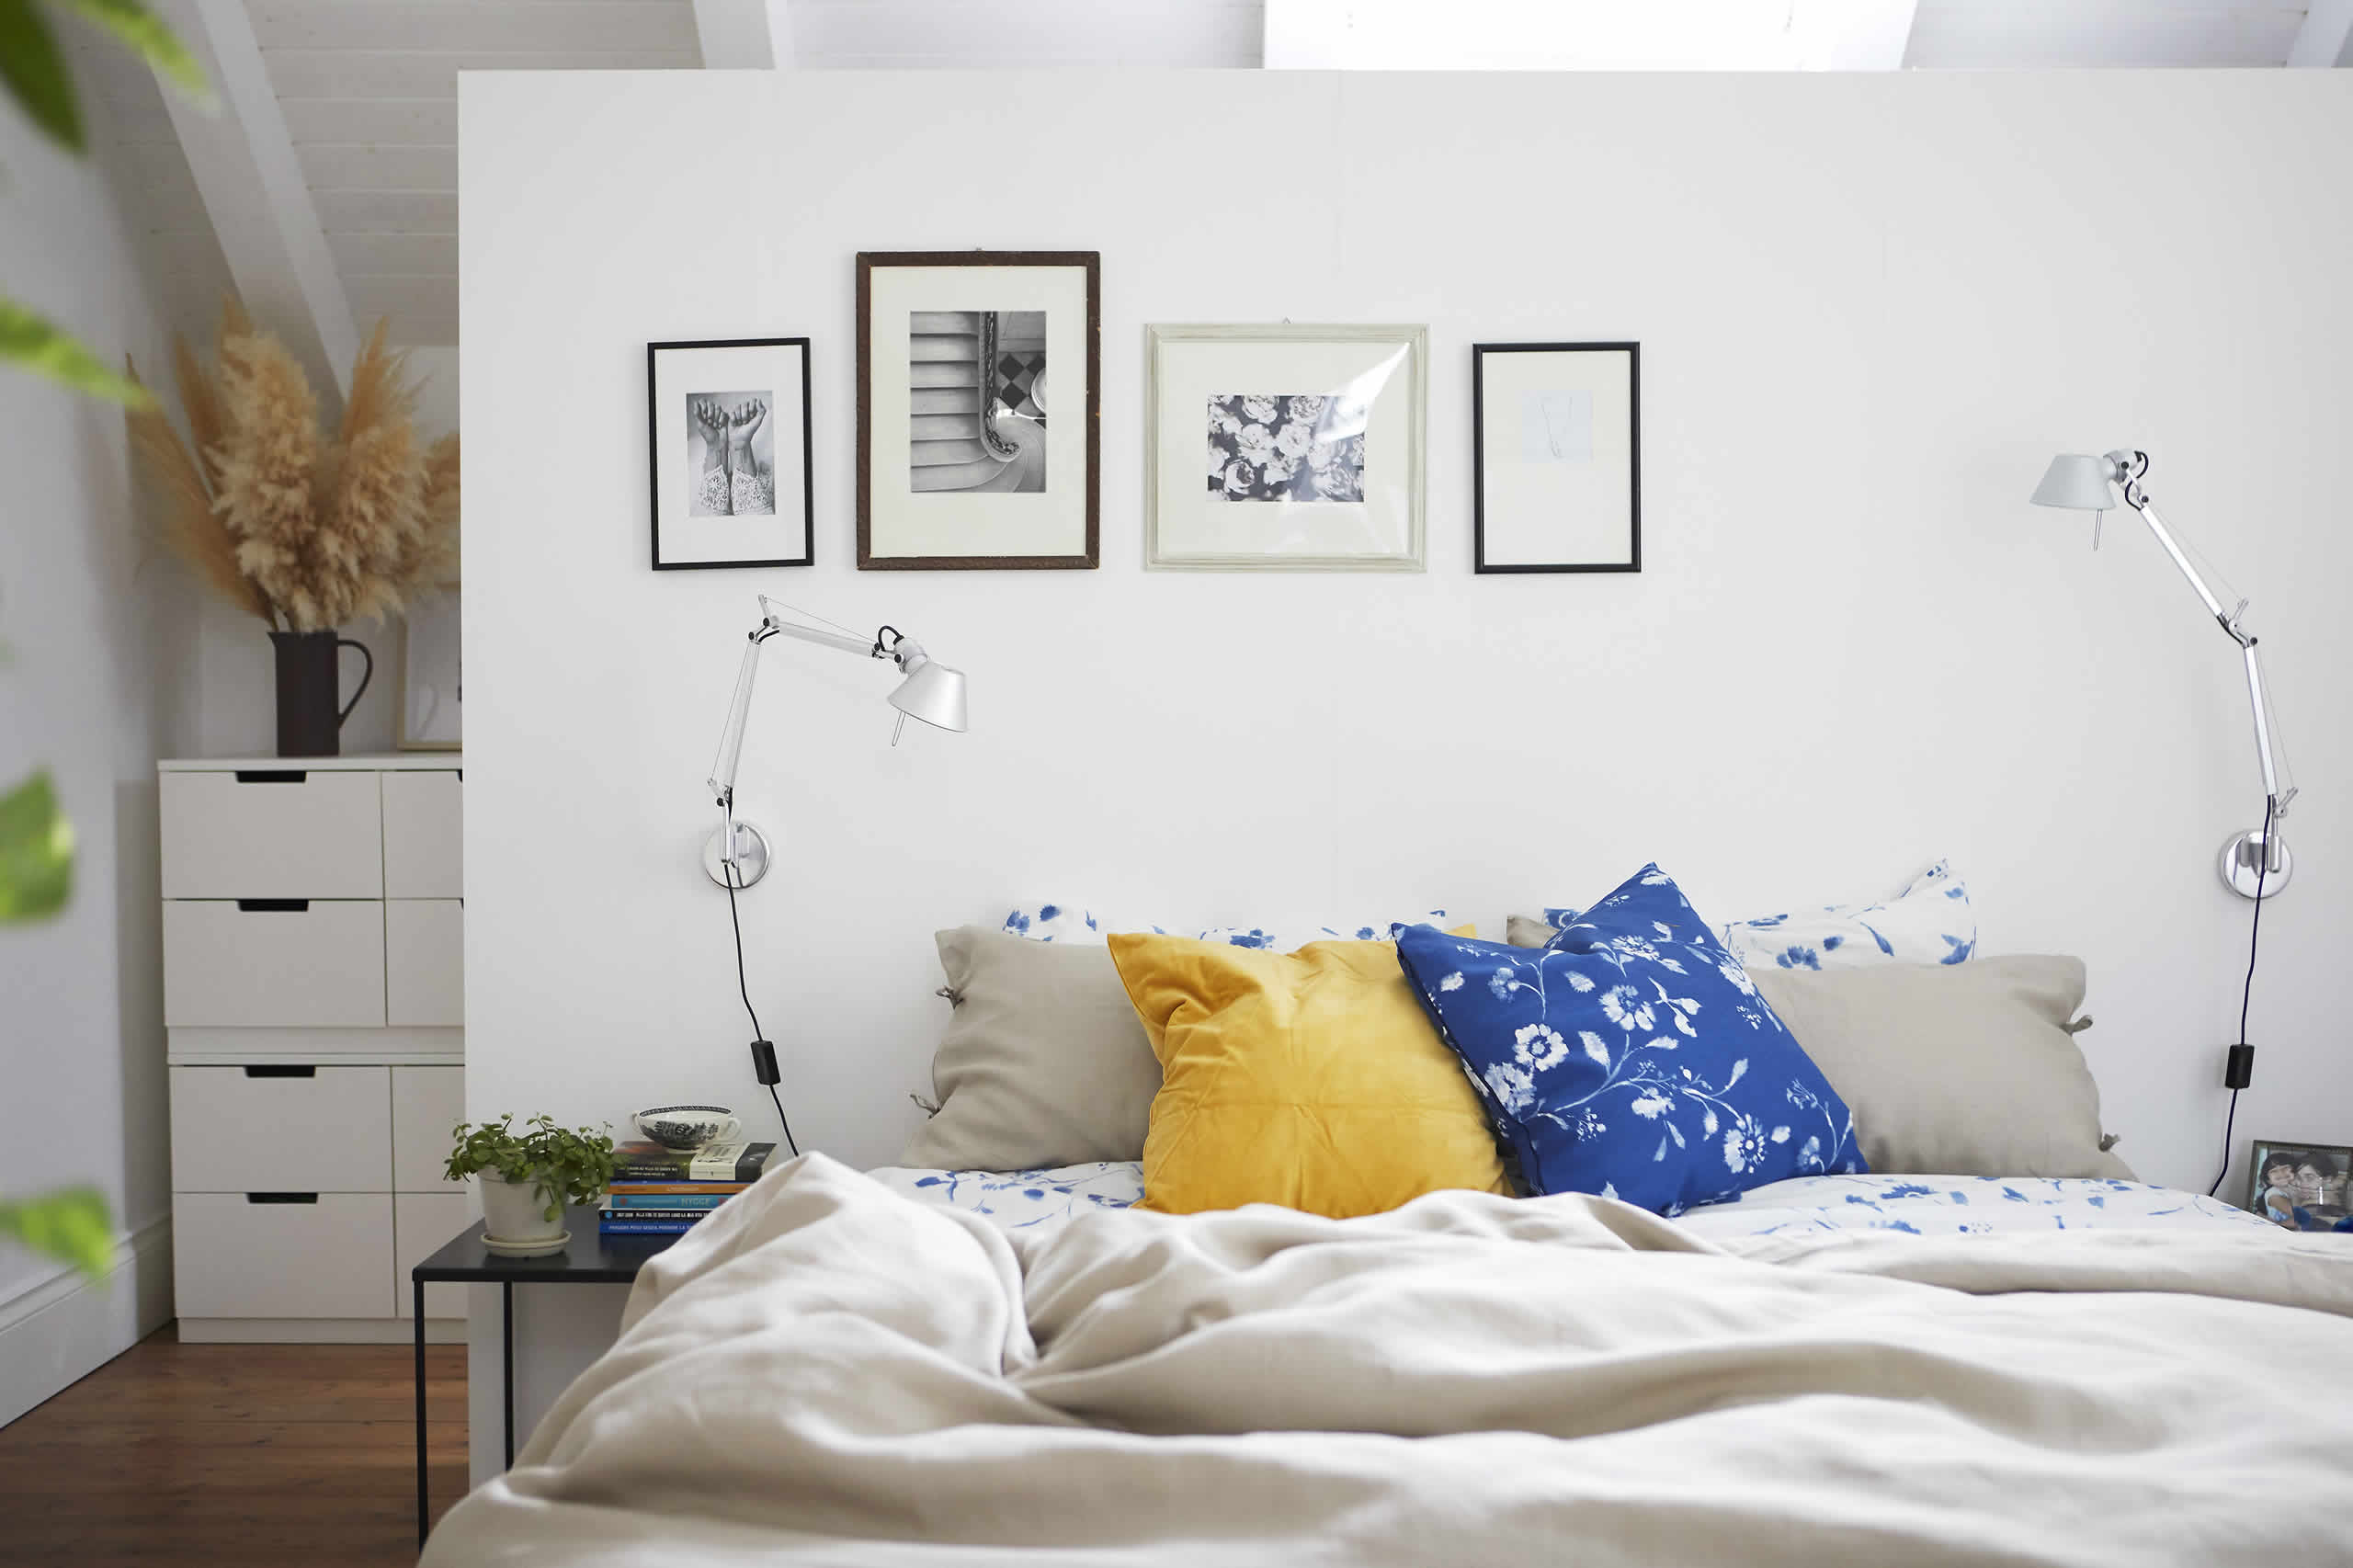 IKEA Ideas - Home visit: calm decor for a stress-free bedroom